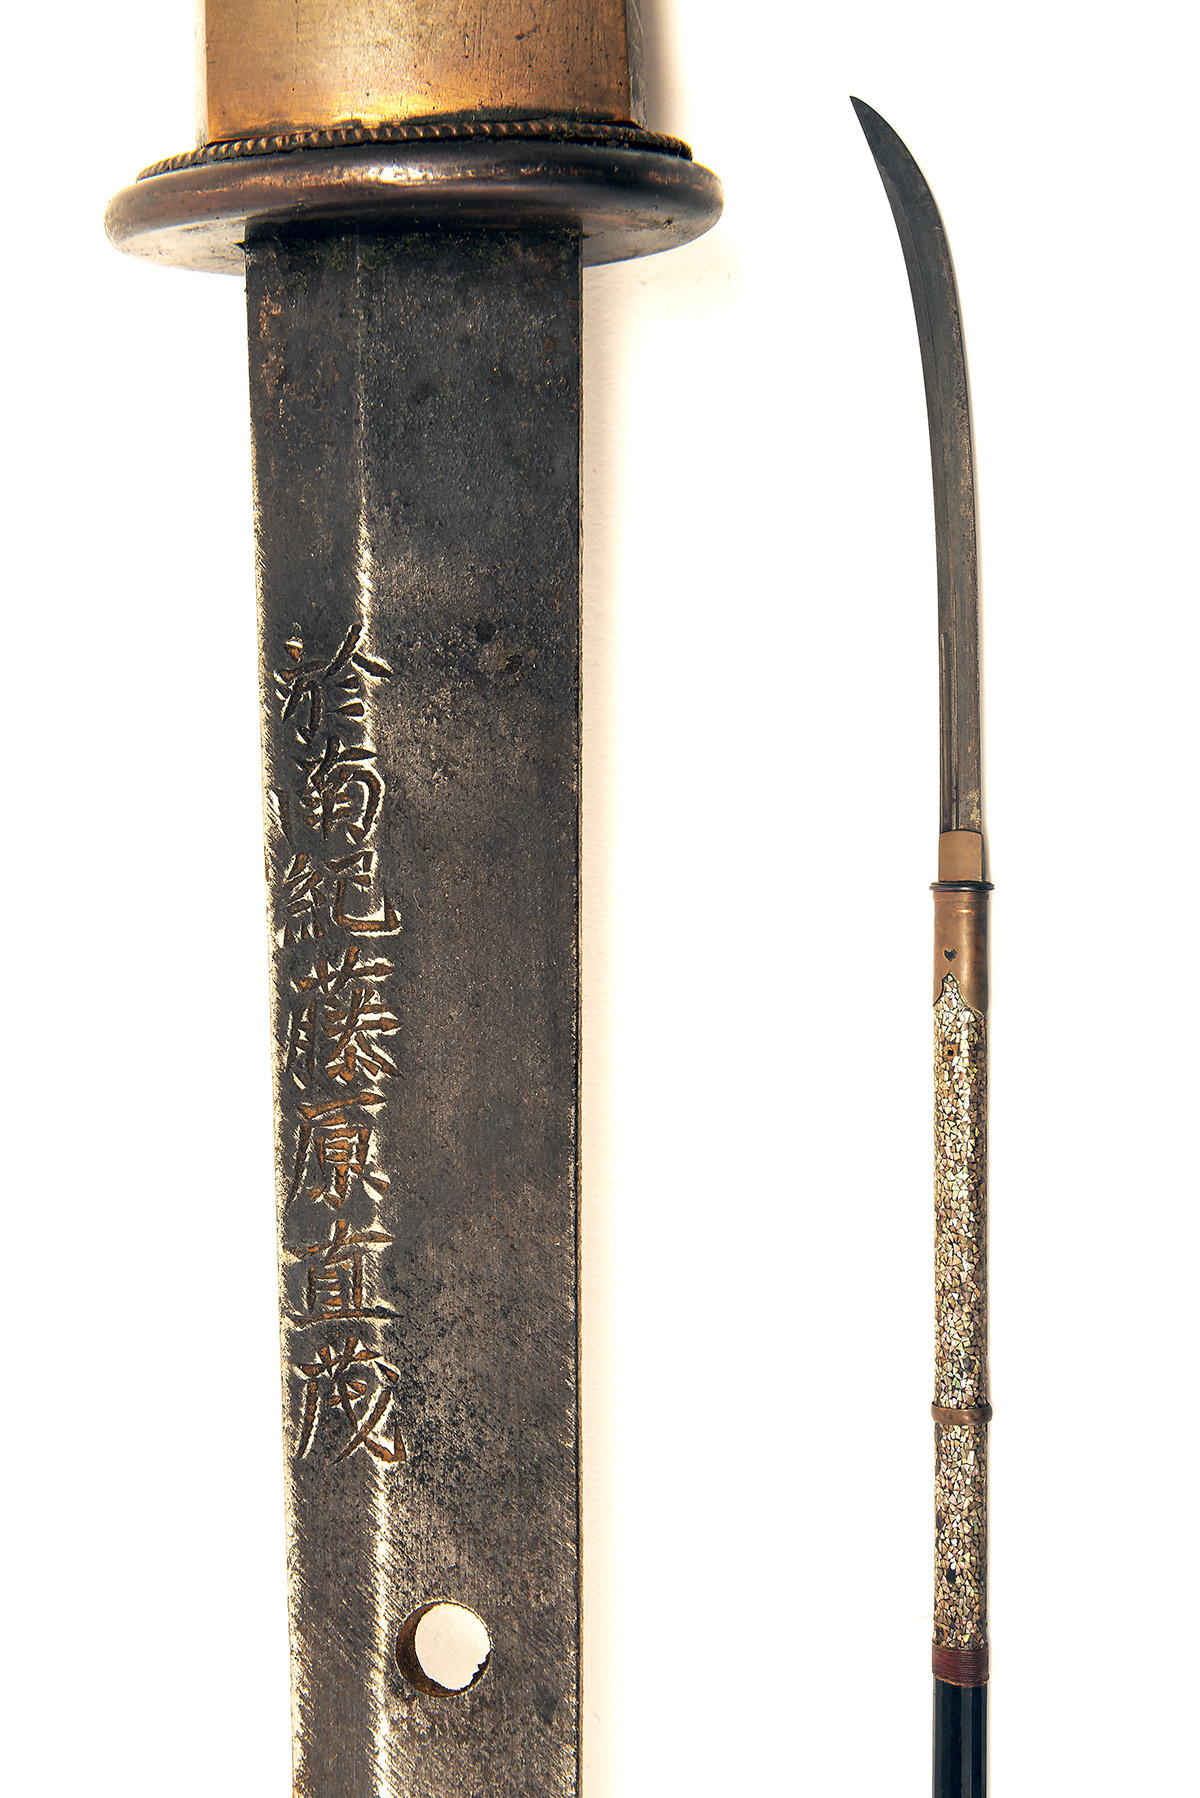 A JAPANESE NAGINATA POLEARM, circa 1800, with curving 18in. blade signed on both sides of the - Image 2 of 4